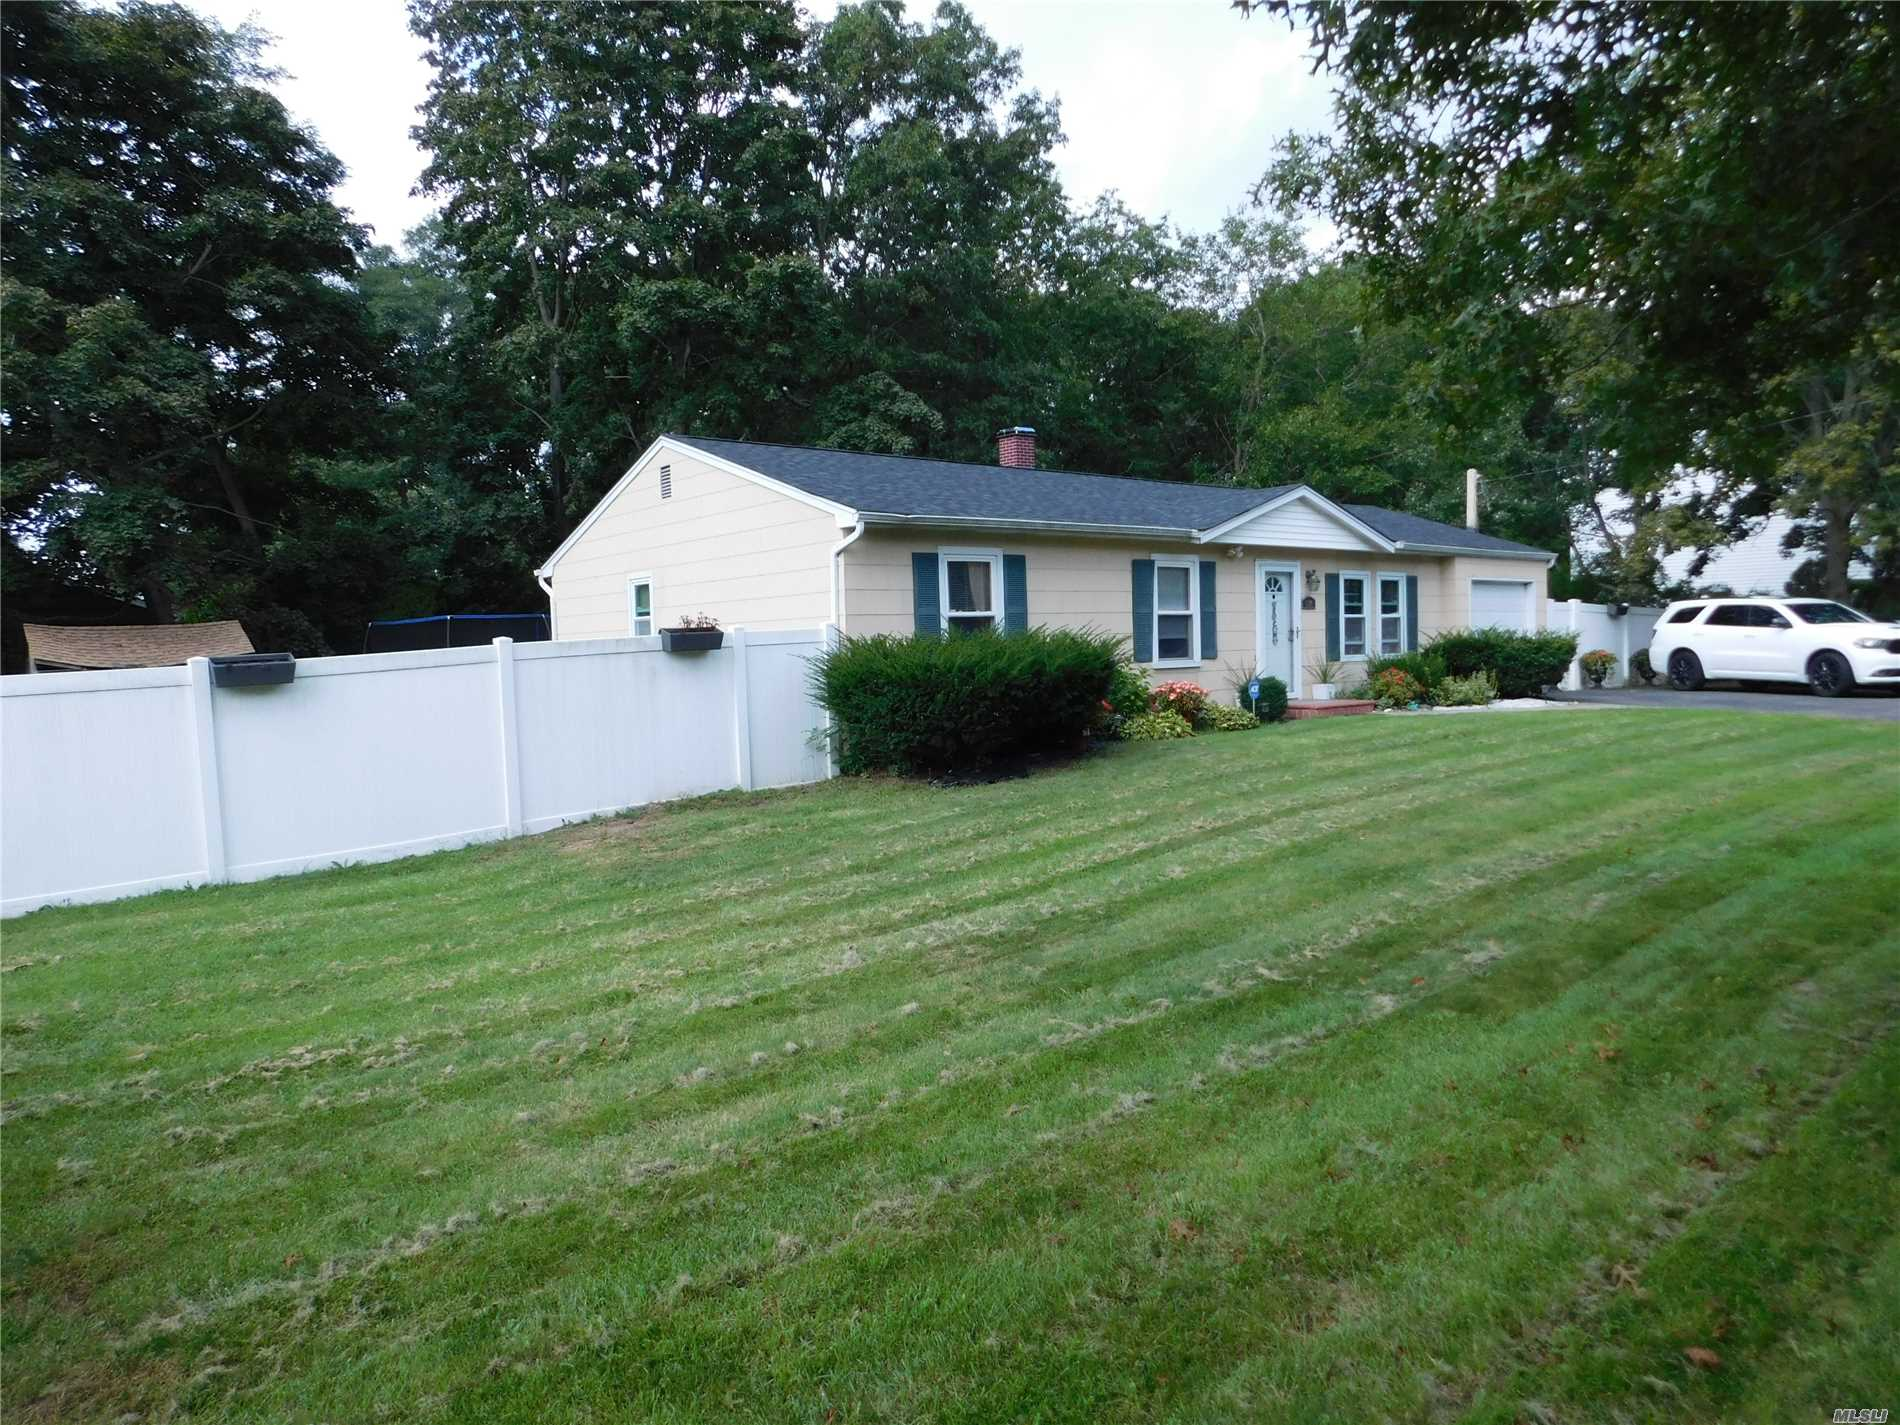 Islip Schools!! Come See This Wide Line 3 Bedroom Ranch With Attach Garage.....Newer Kitchen With Ss Appliances, Wood Floors, Garage, Fenced In Property, Close To All Major Transportation.